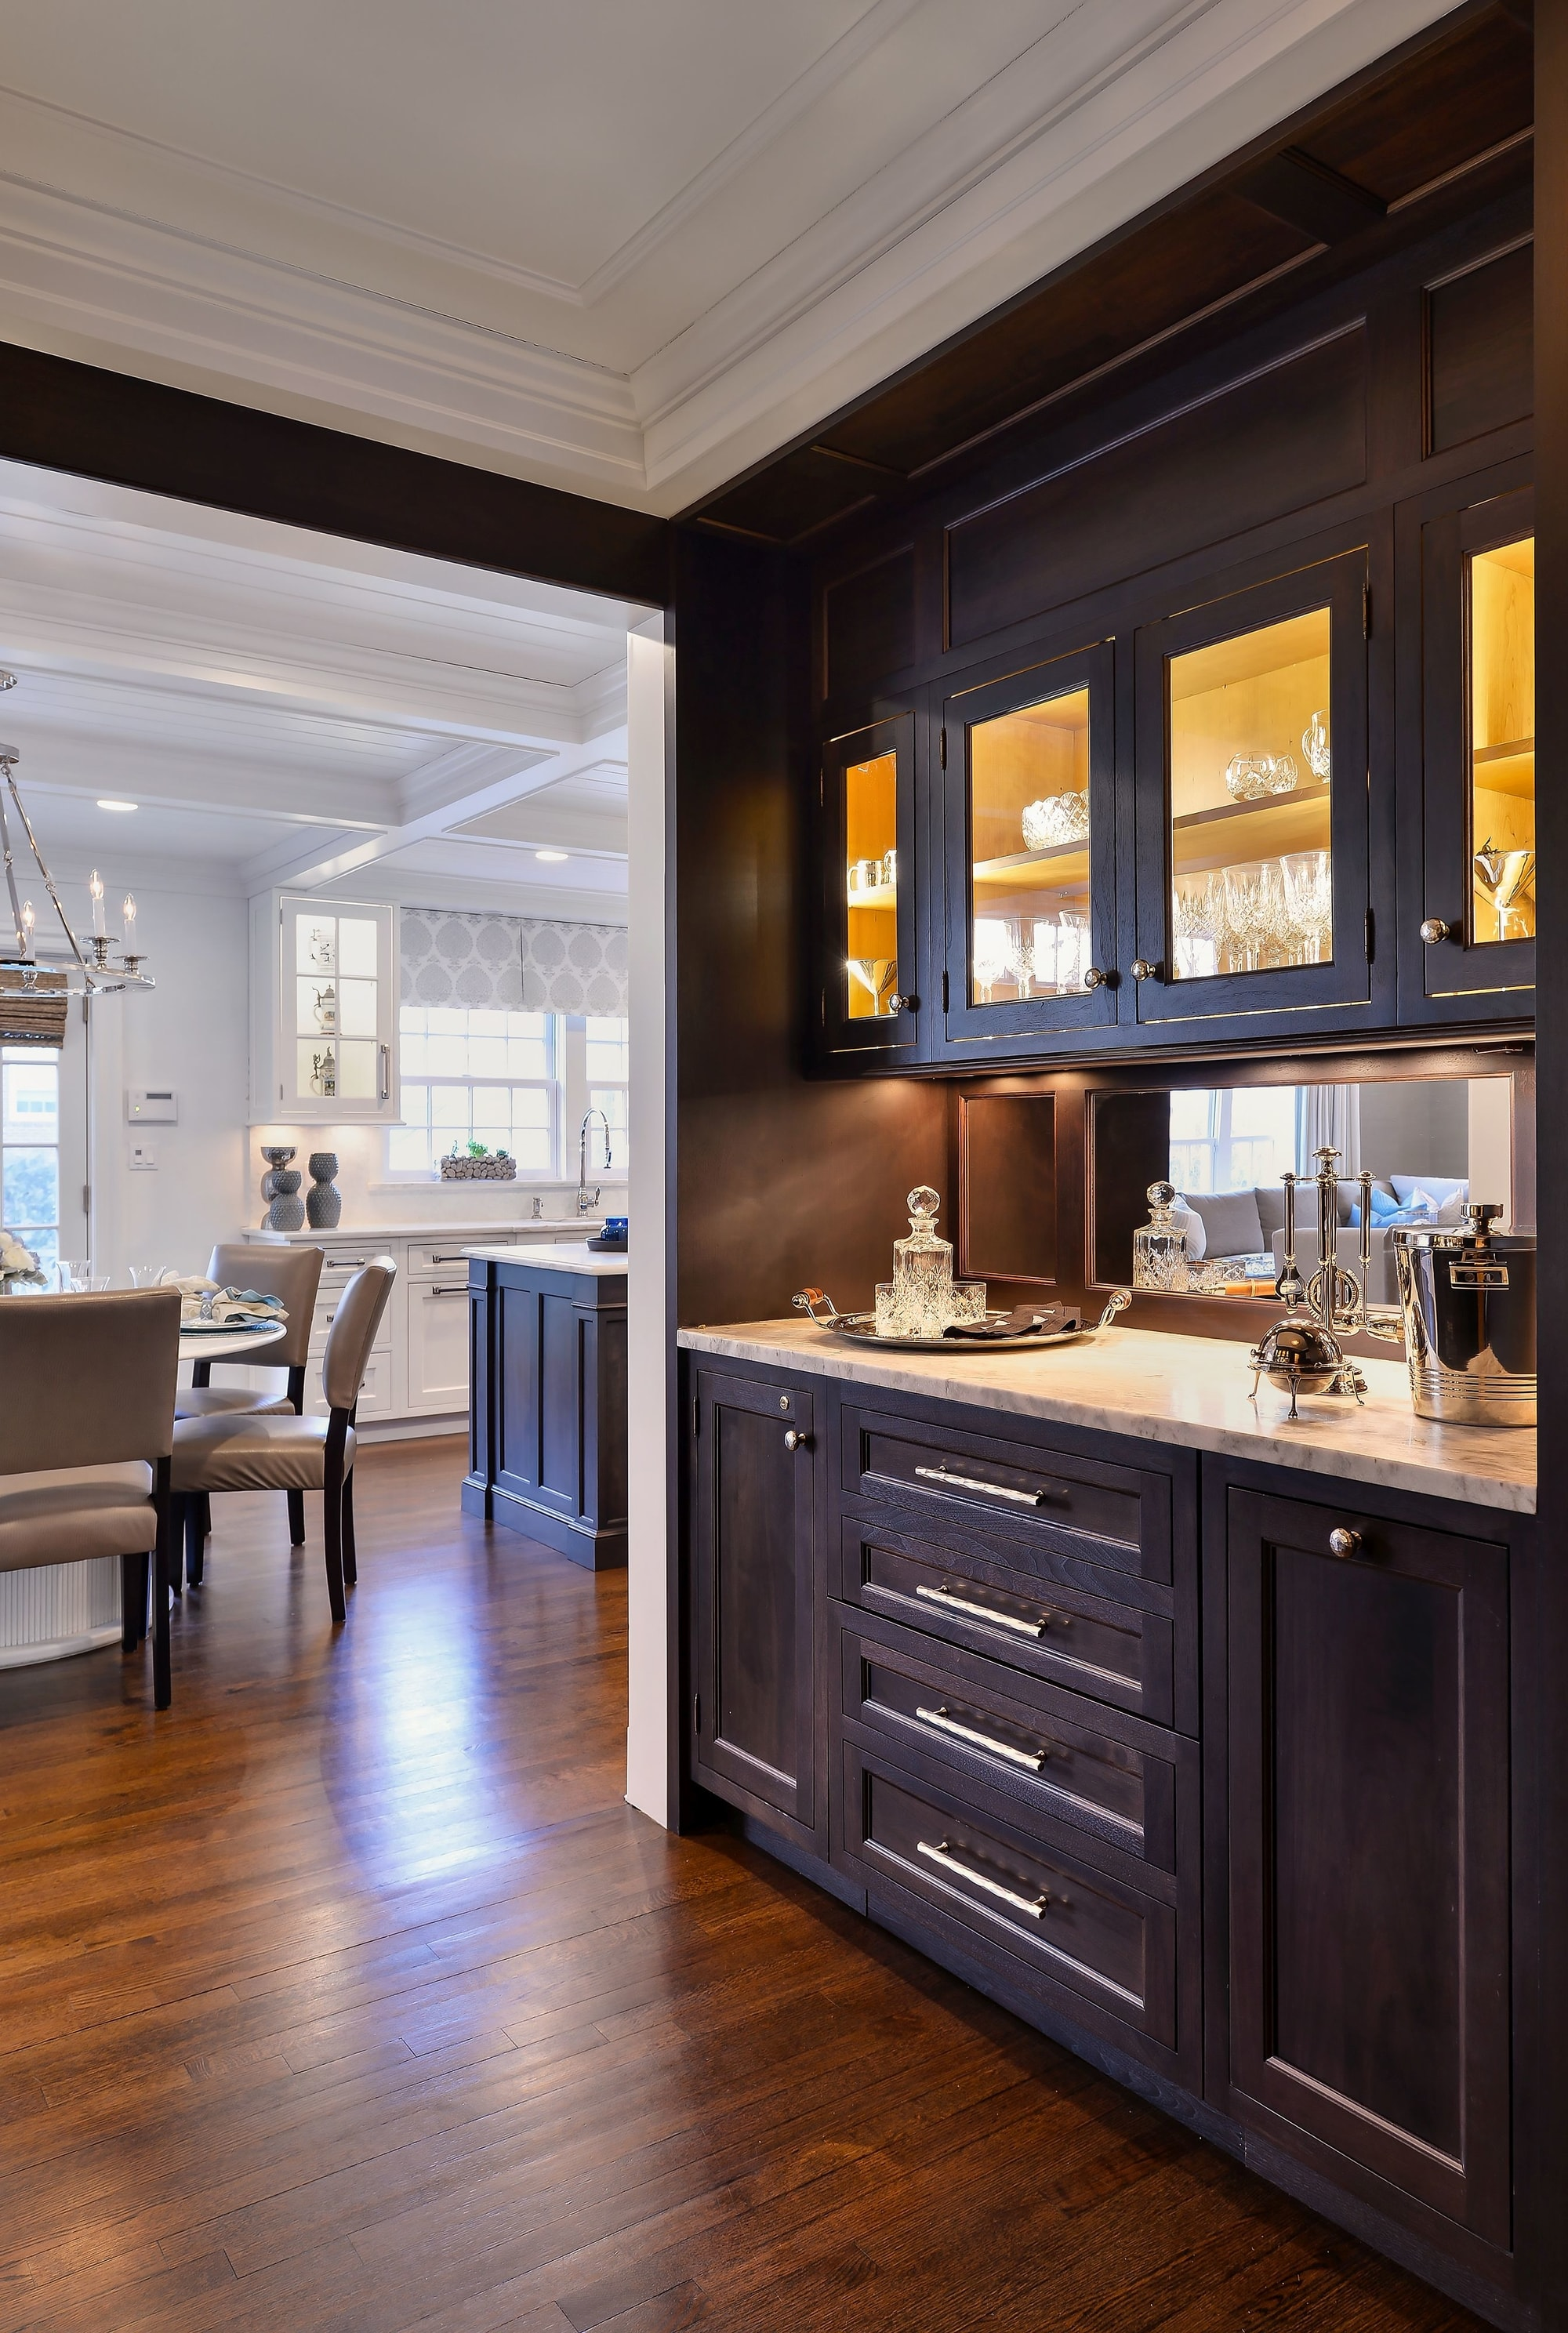 Transitional style kitchen with wine bar counter